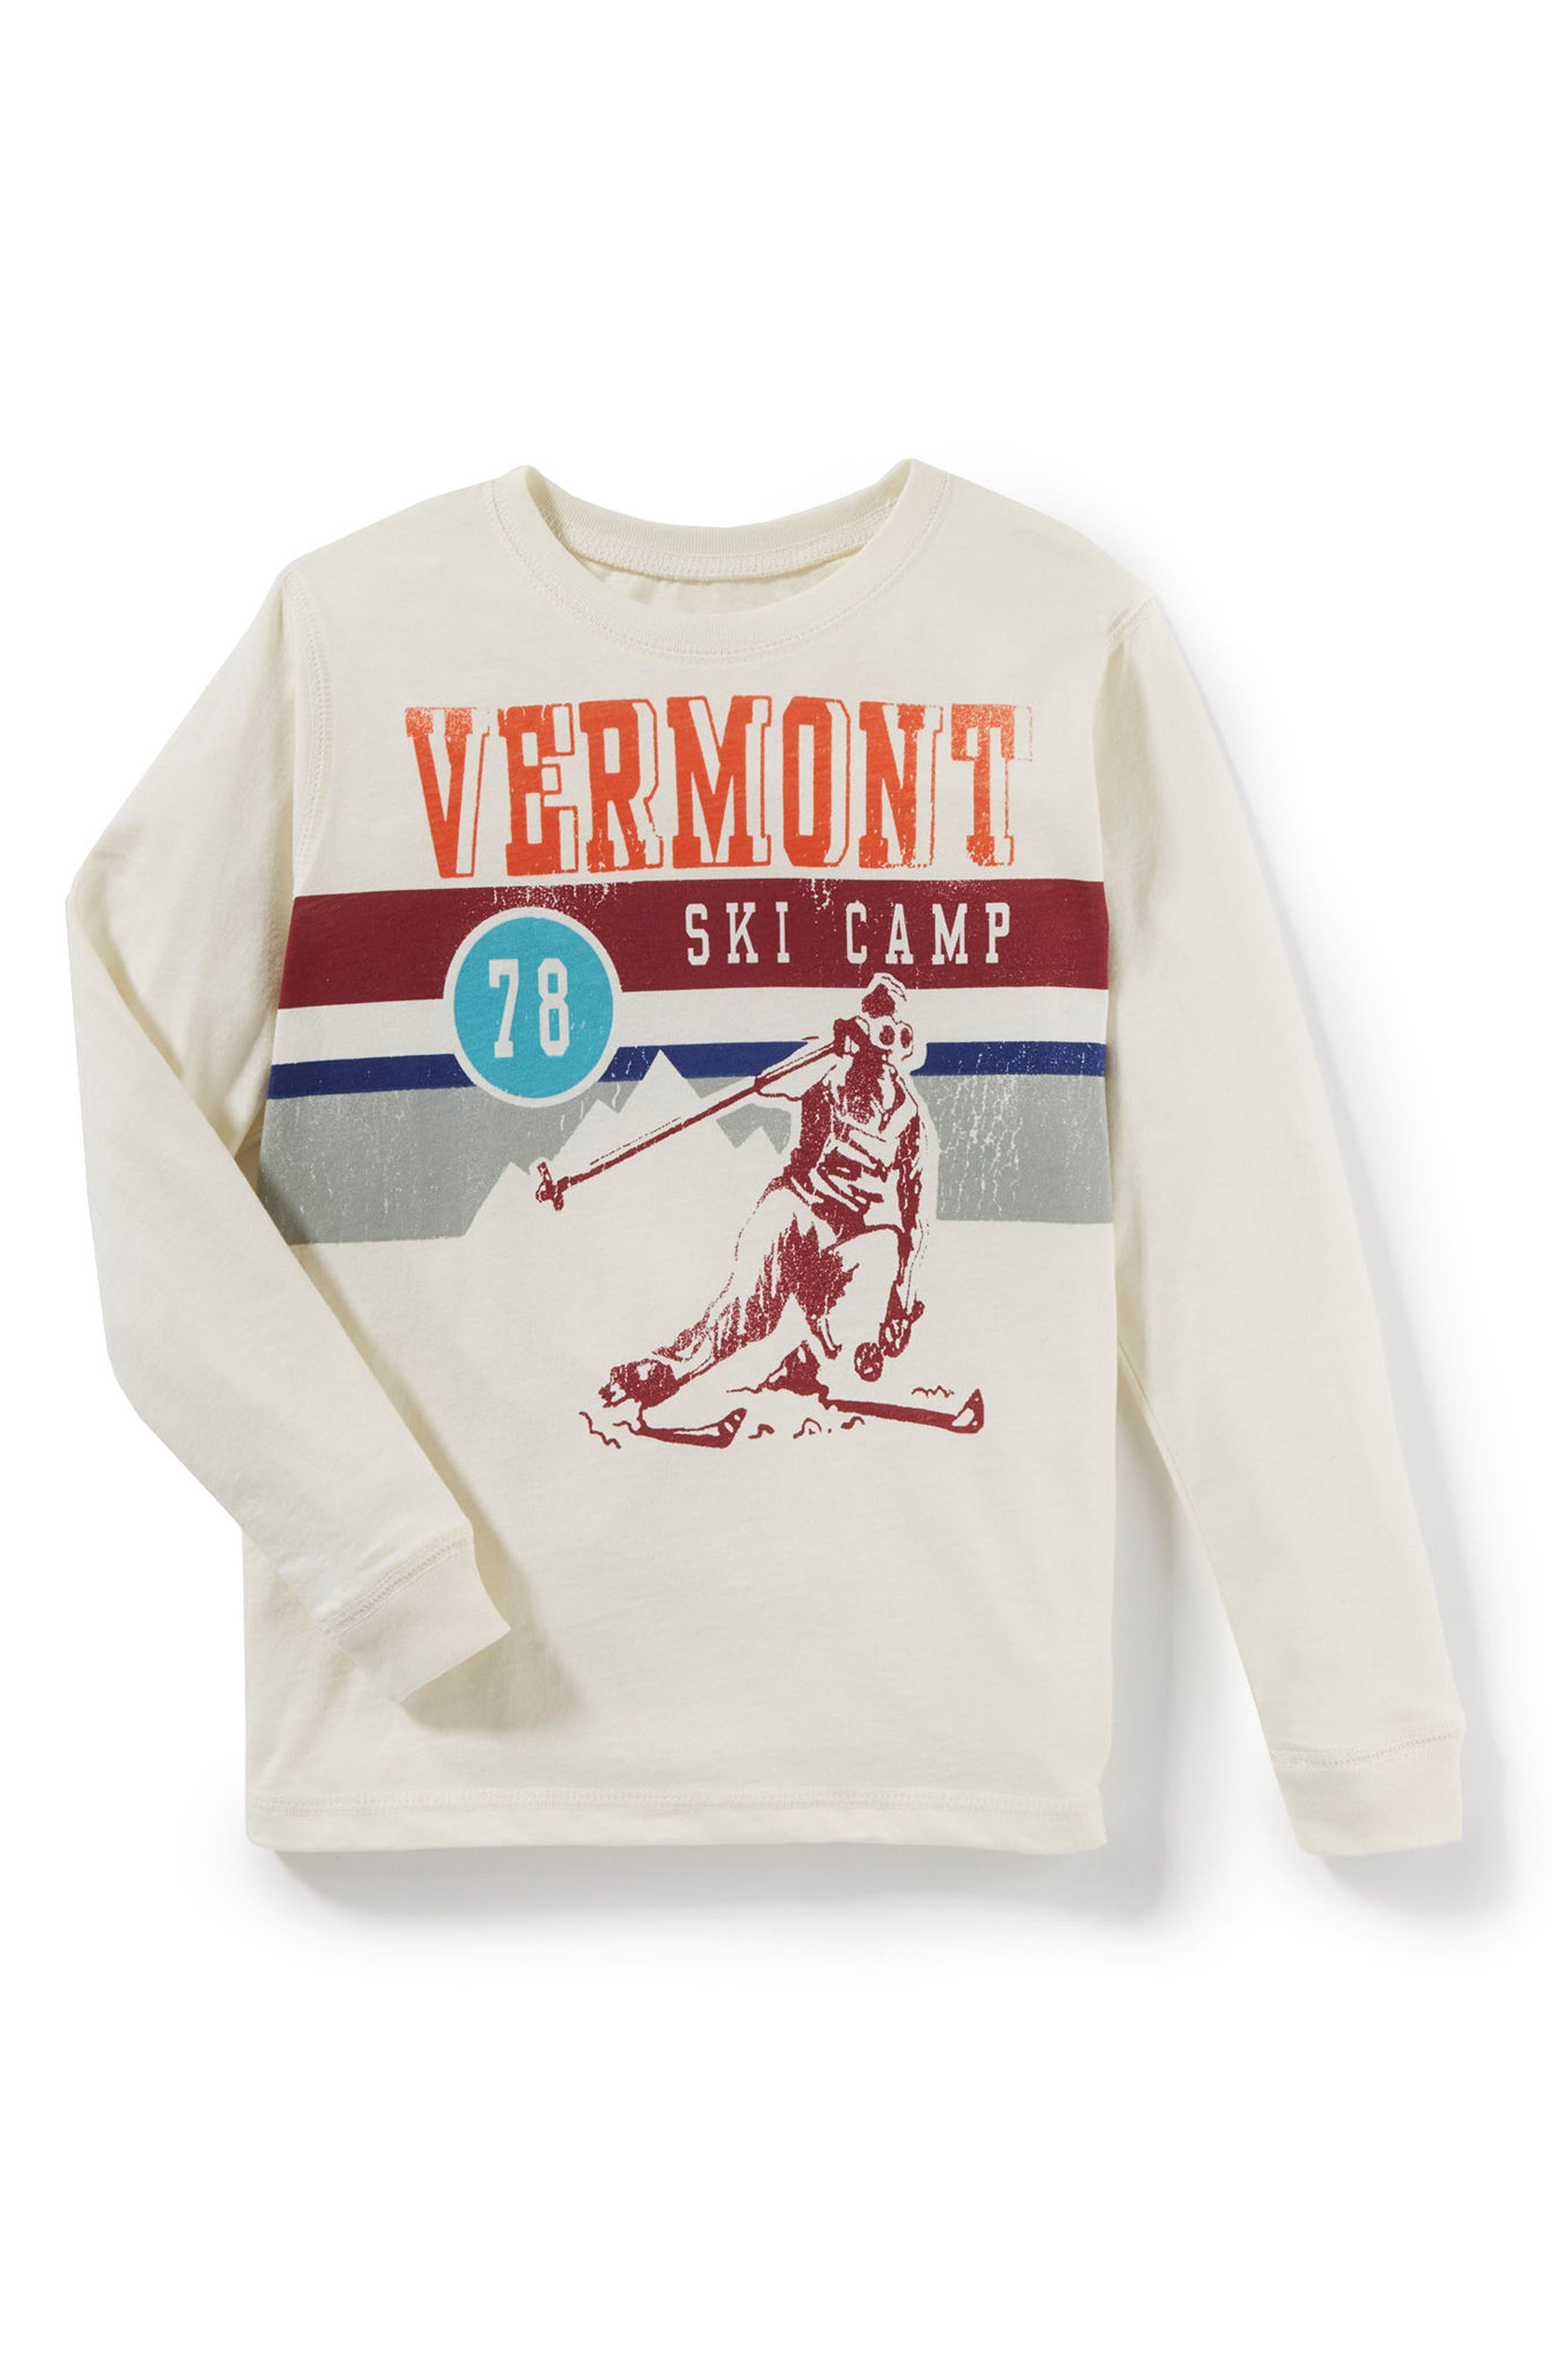 Alternate Image 1 Selected - Peek Vermont Ski Camp Graphic Long Sleeve T-Shirt (Toddler Boys, Little Boys & Big Boys)